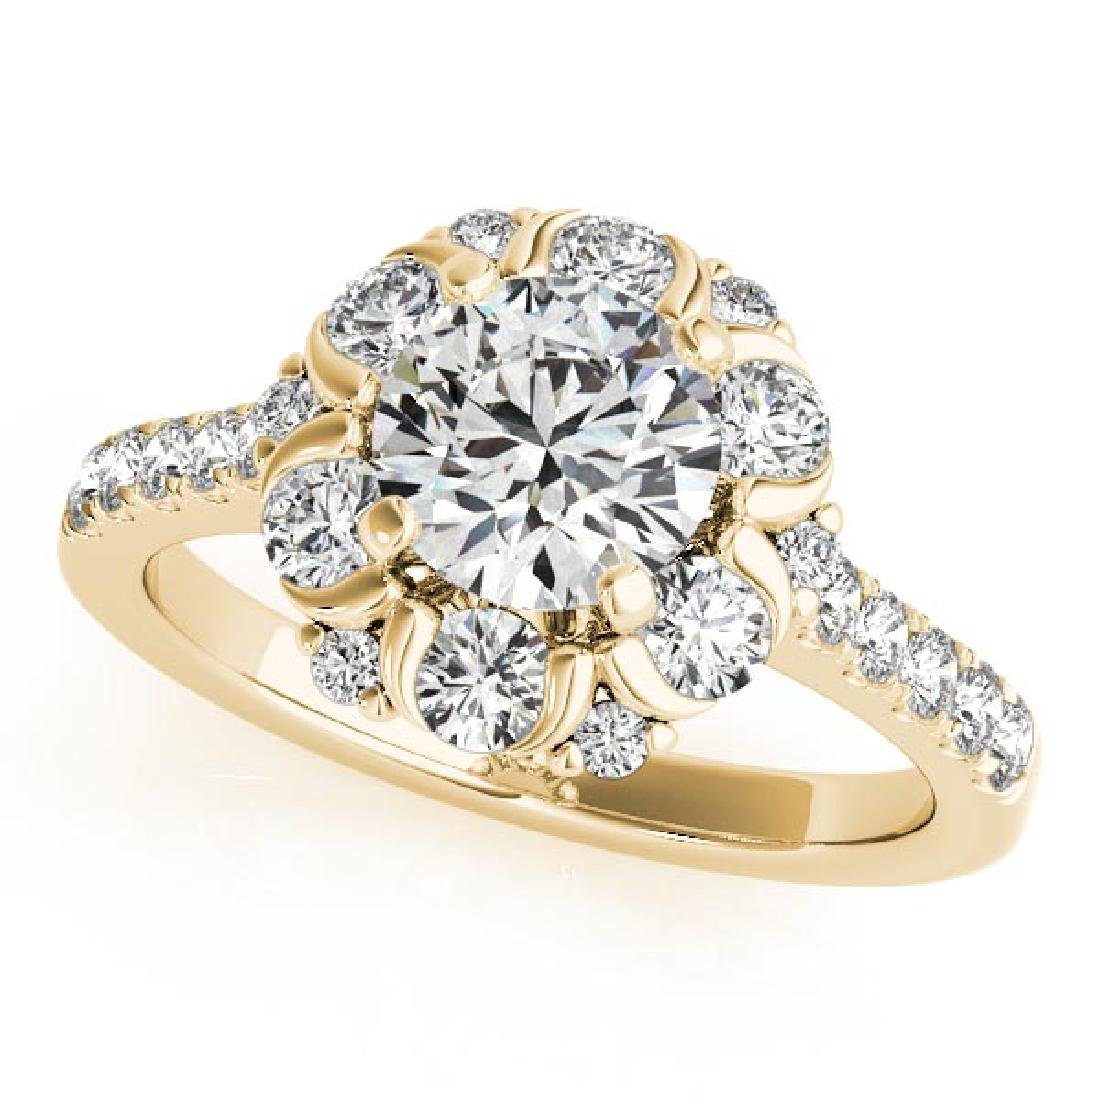 CERTIFIED 18K YELLOW GOLD 1.51 CT G-H/VS-SI1 DIAMOND HA